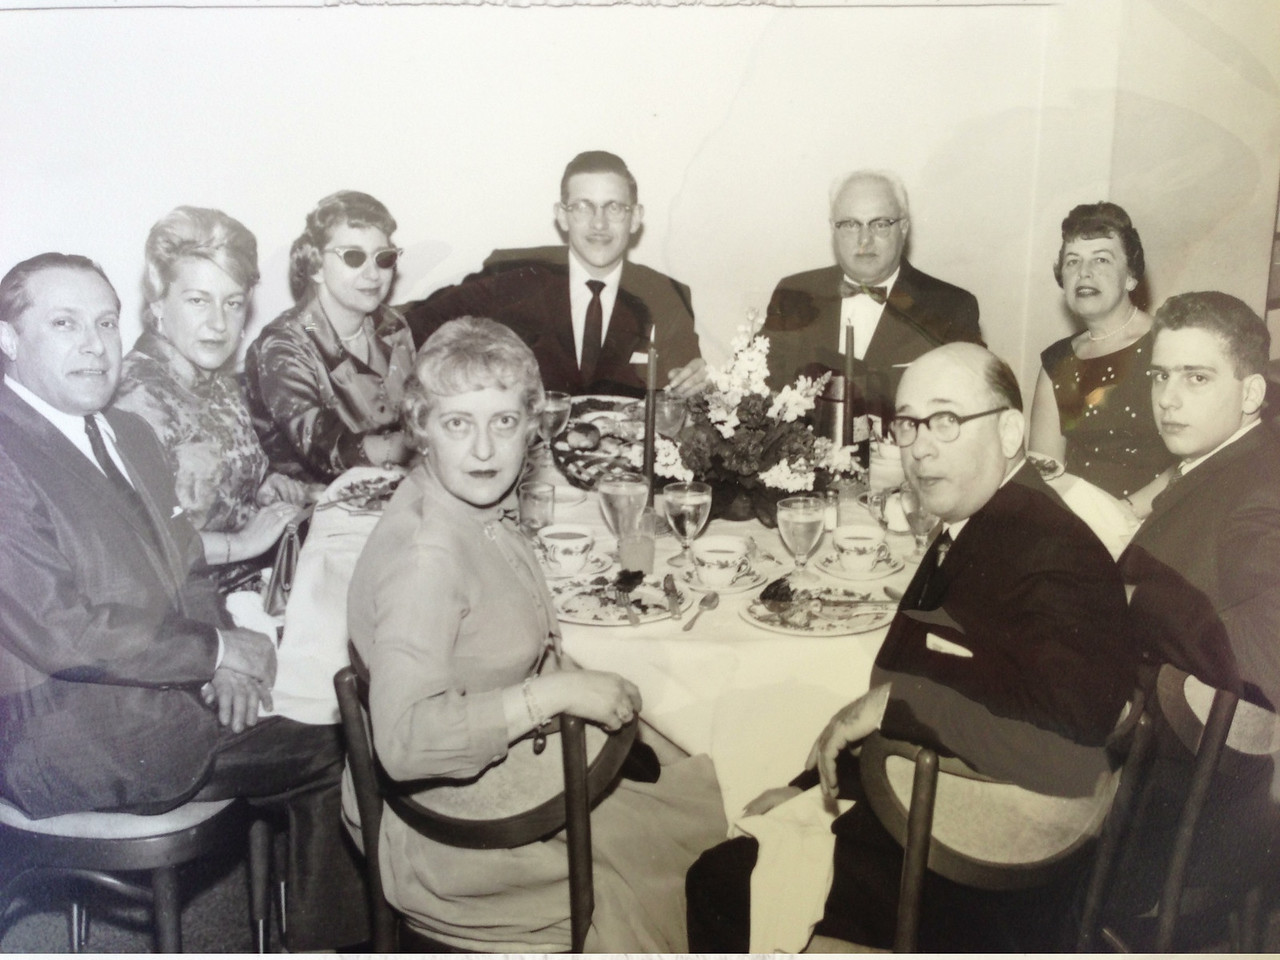 (start in lower left and go counter-clockwise) Aunt Marion (Leon's wife), Uncle Leon (Bob's oldest full brother,orthodontist), David Diskin(1st cousin), David's Bar Mitzvah